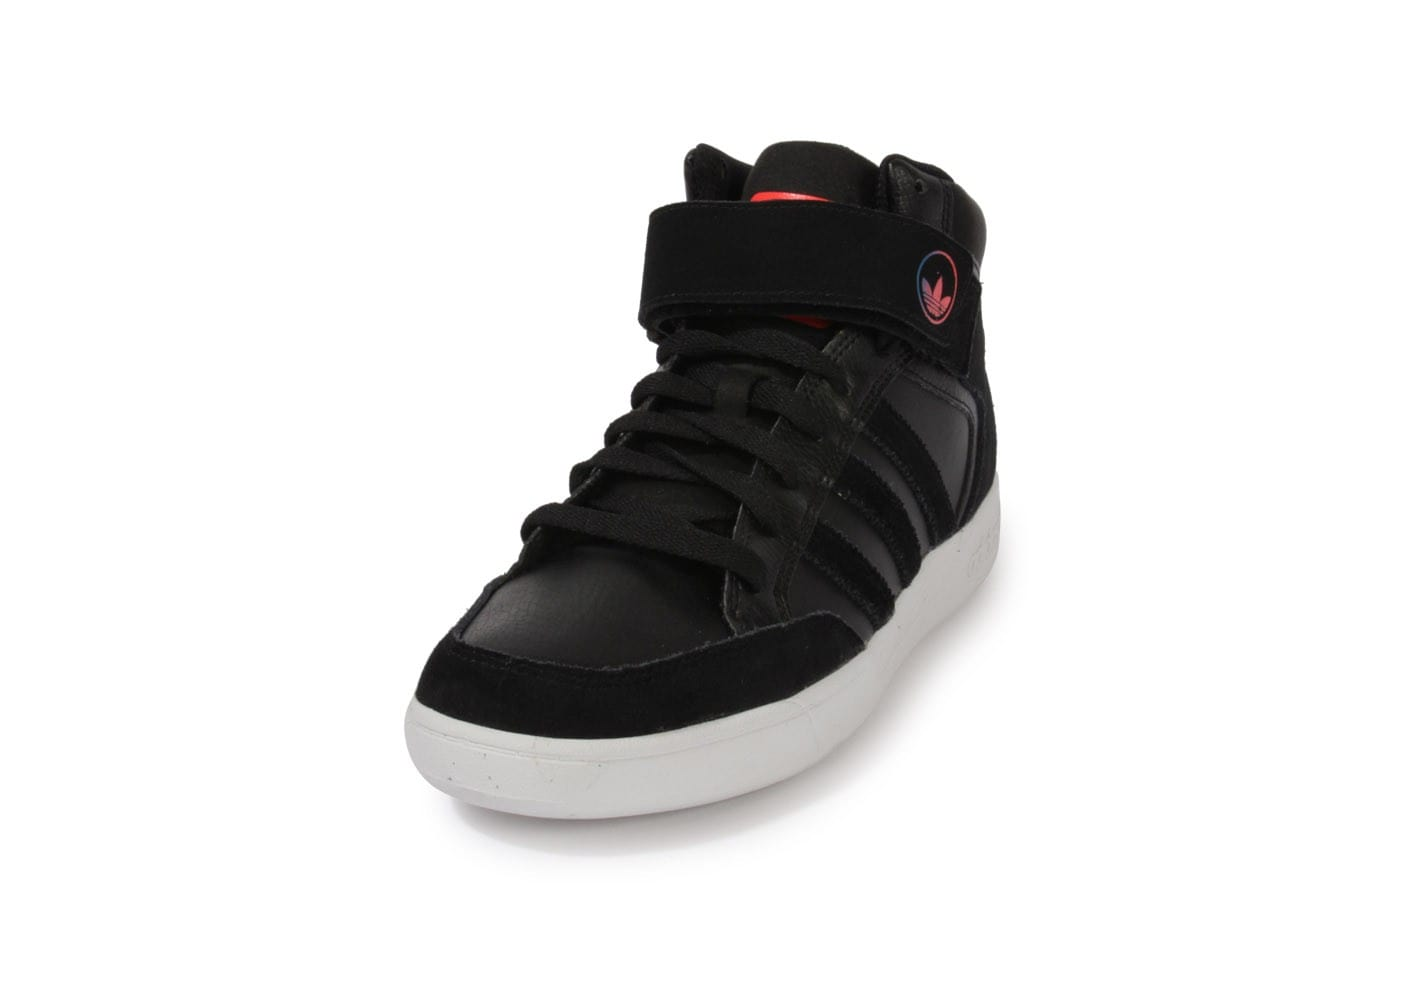 adidas Varial Mid Noire Chaussures Baskets homme Chausport